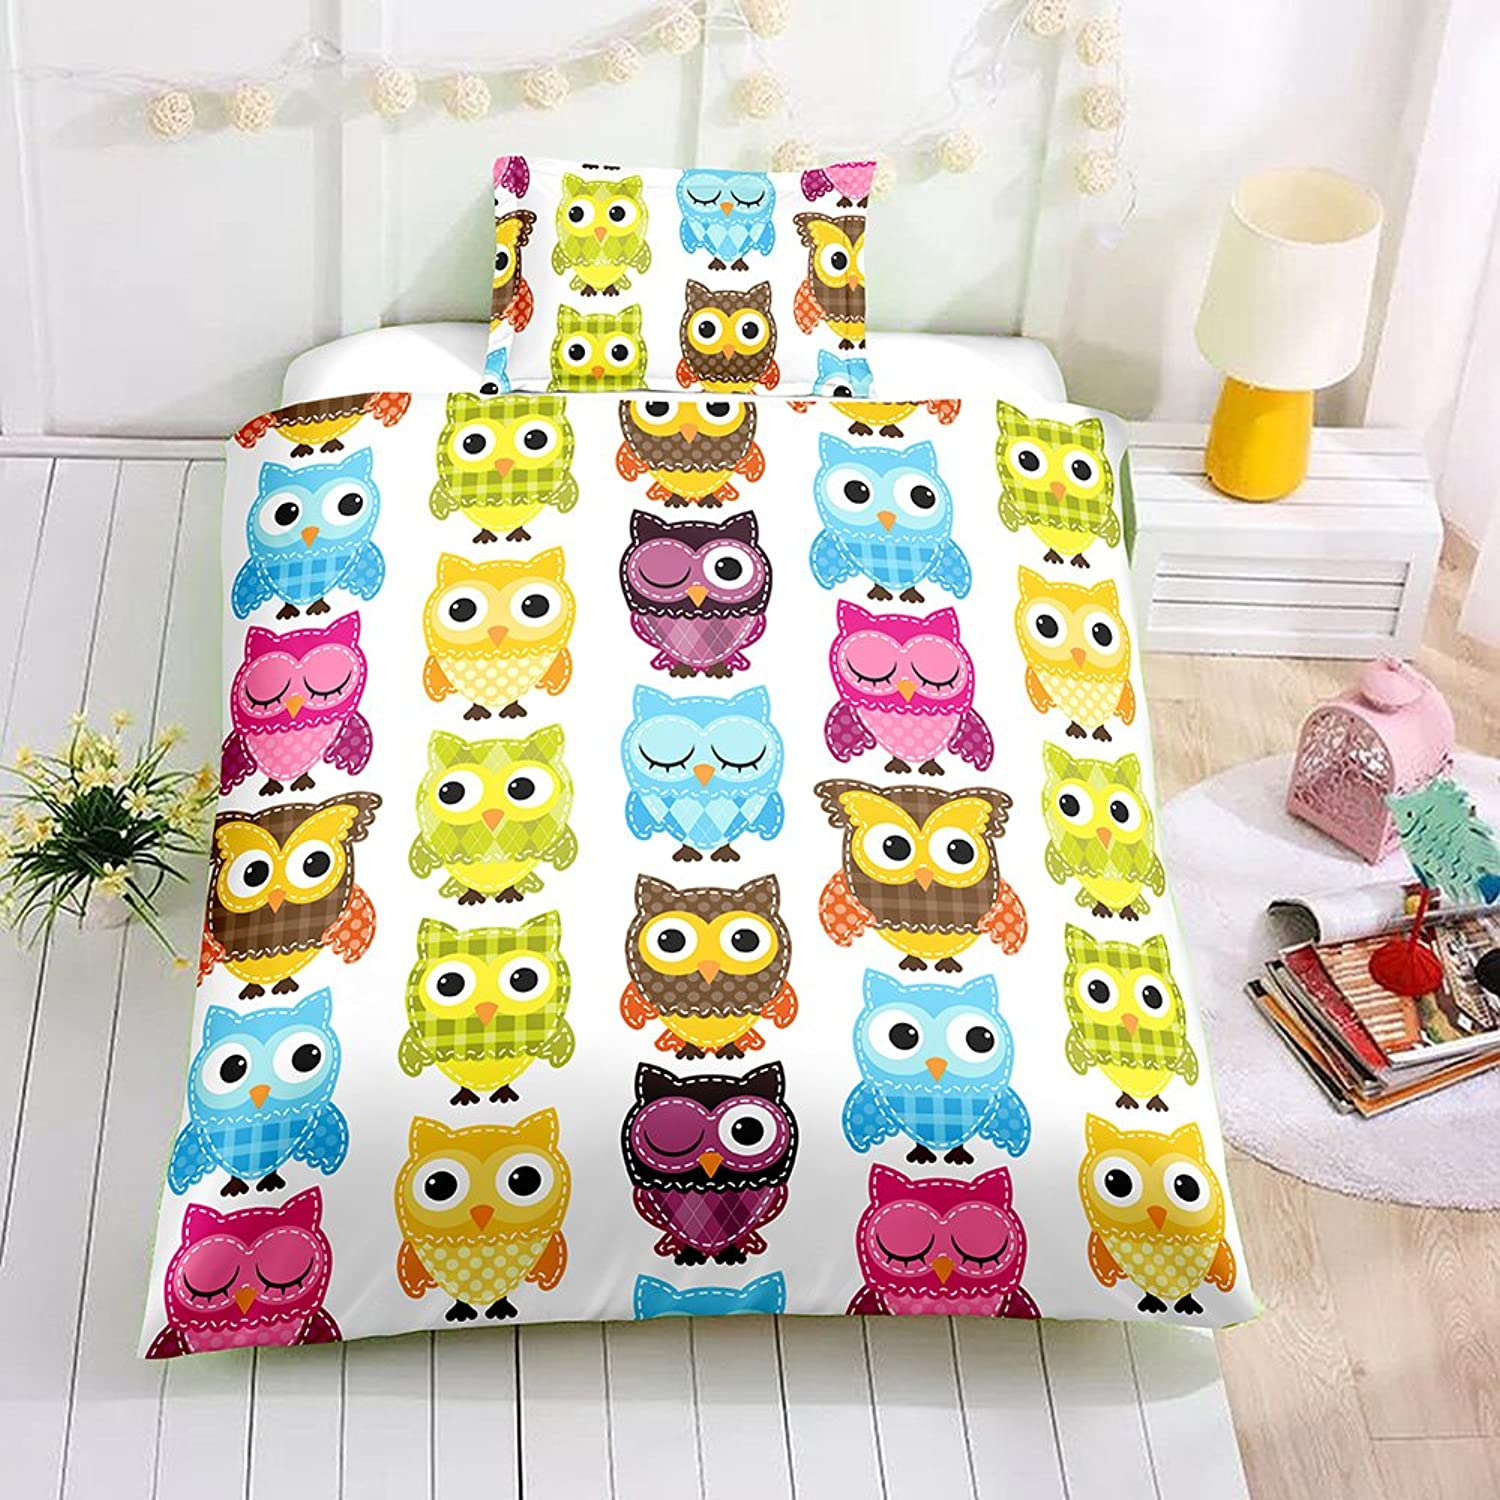 Meetbelify Duvet Cover 3PCS -Girls Bedding Set Cute Owl Printed with Pillowcases.Twin Size 2PCS,1 Duvet Cover68 x86+1 Pillow Shams19 x30,Comforter Not Included.